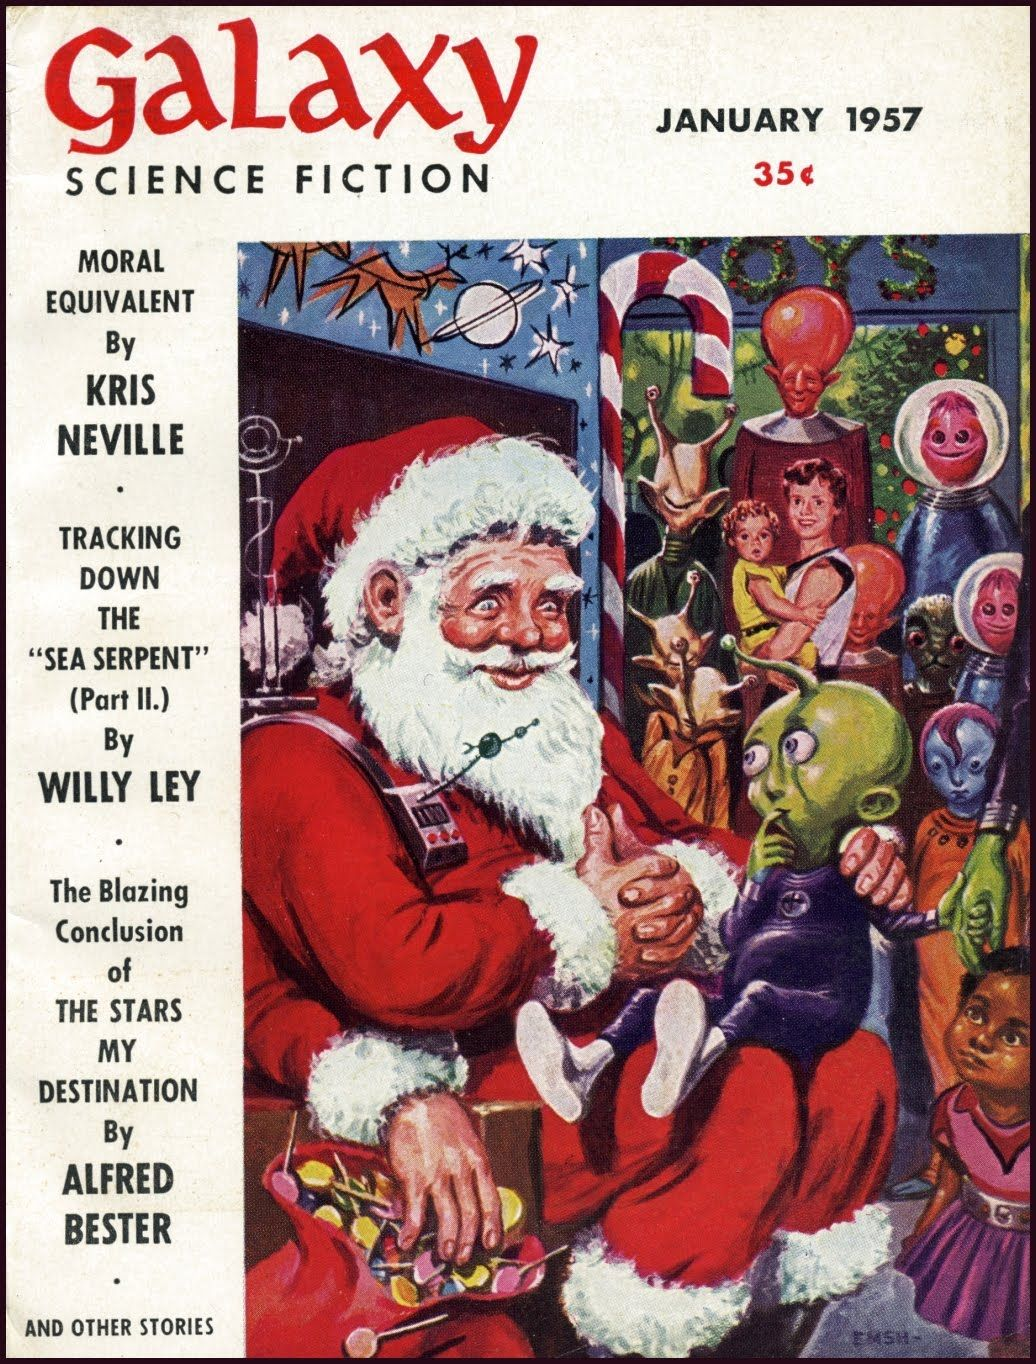 Pin By Blitzbuggy On When Christmas Comes To Town In 2020 Christmas Art Cover Art Science Fiction Art